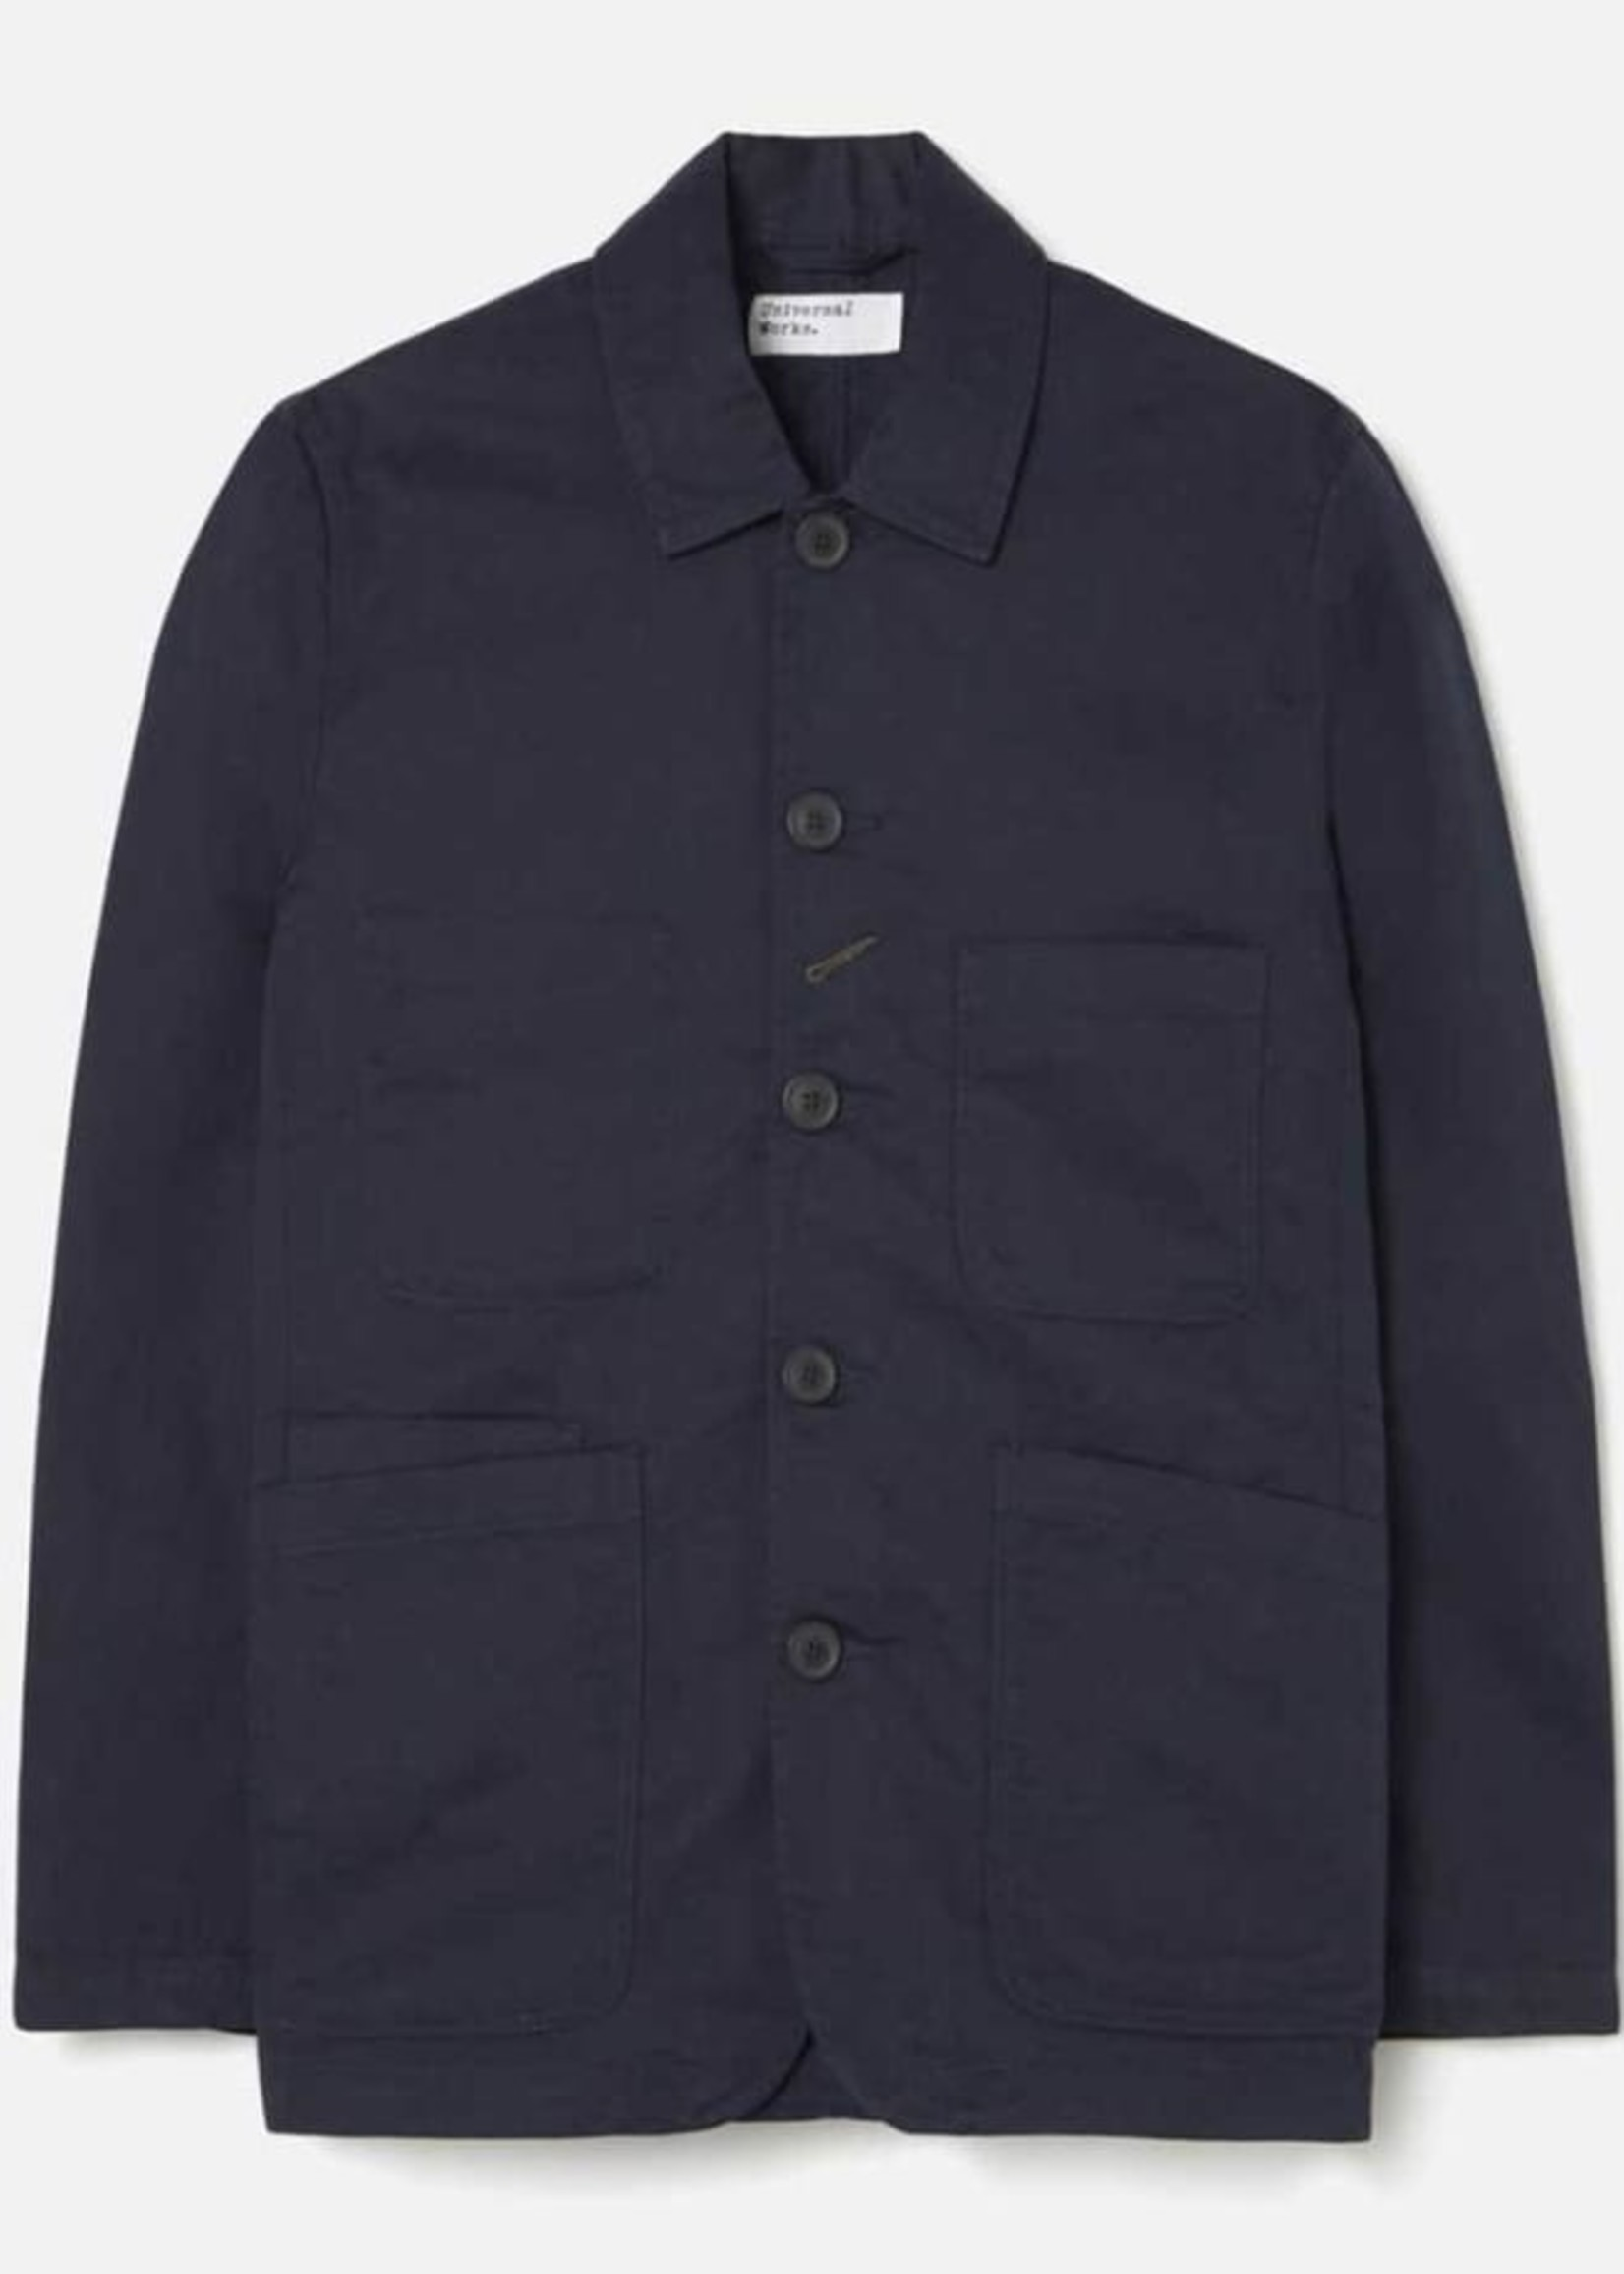 Universal Works Universal Works Bakers Jacket Navy Cotton Twill